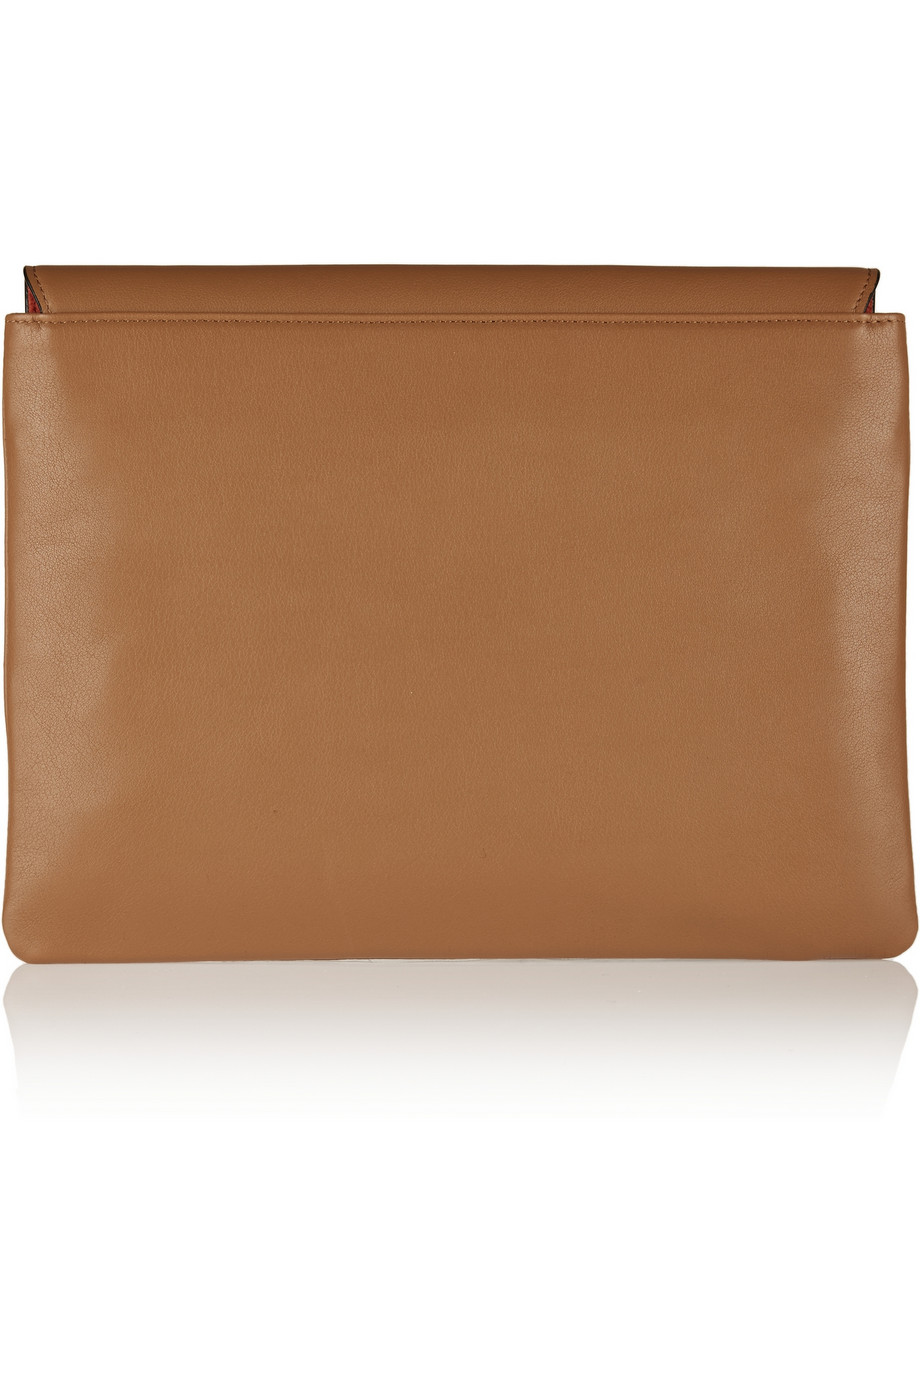 Capulet london olivia leather ipad clutch – 55% at the outnet.com